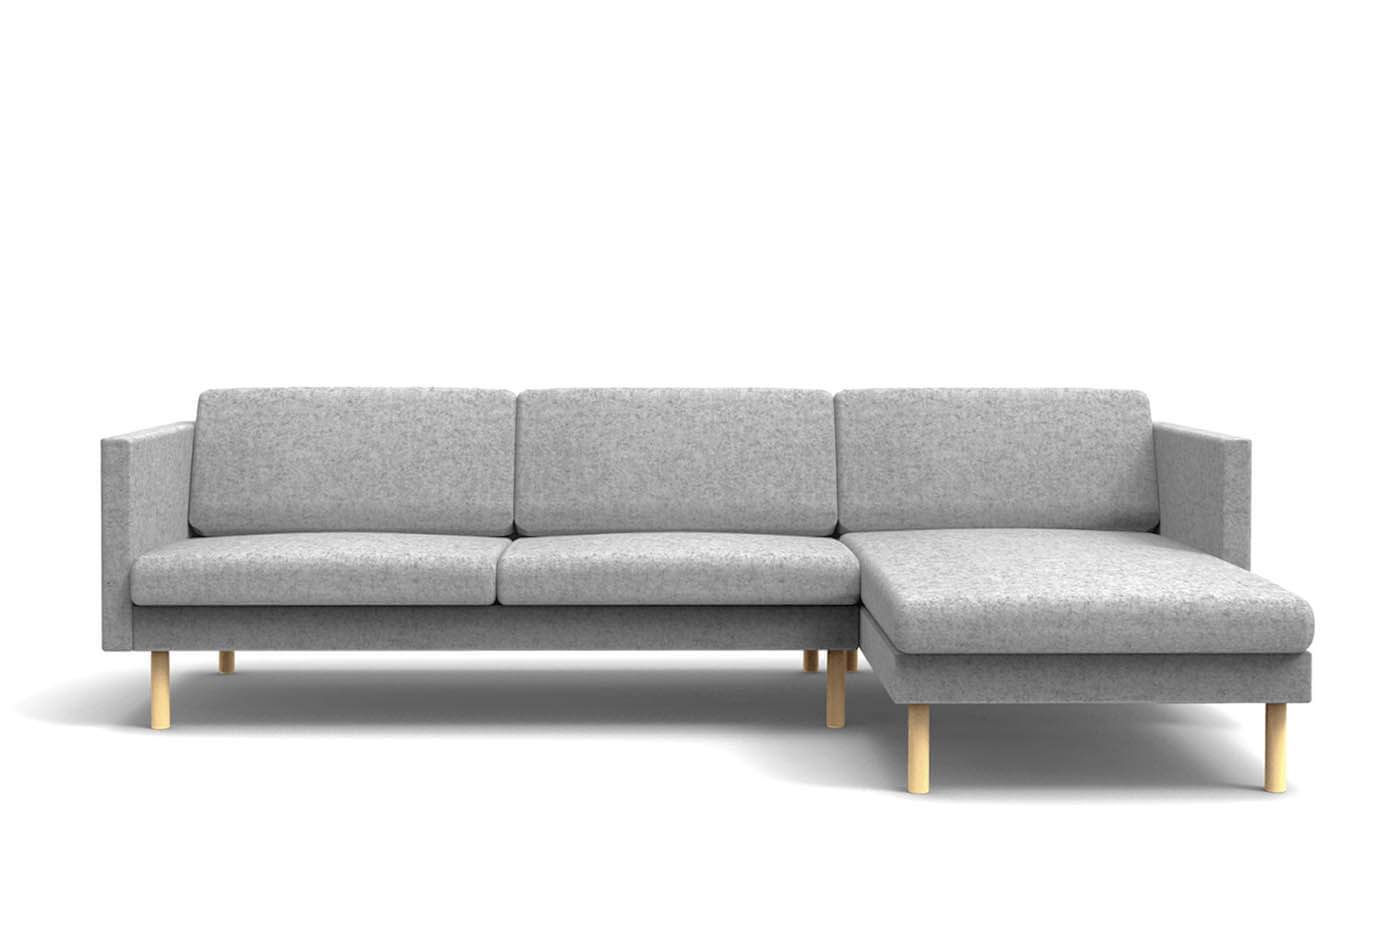 sc 1 st  Oot-Oot Studio : sofa chaise long - Sectionals, Sofas & Couches